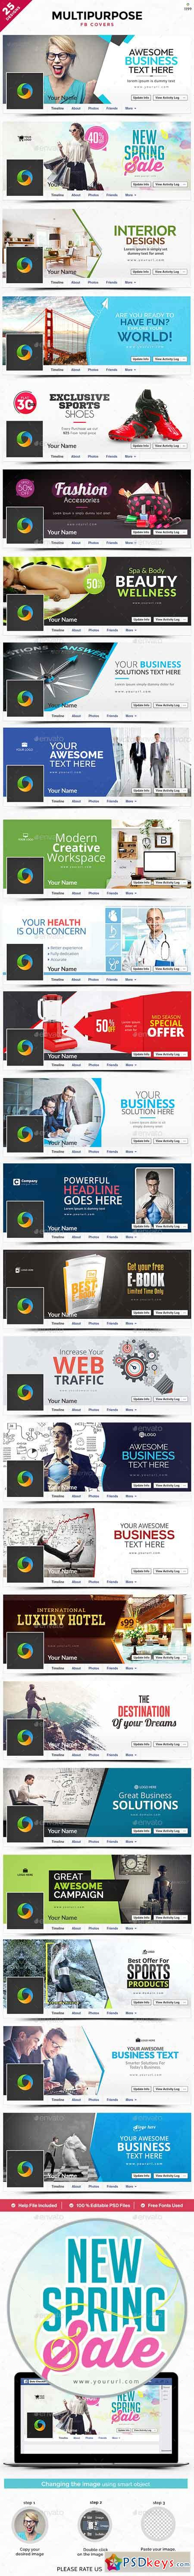 Multipurpose Facebook Cover Templates - 25 Designs 22106875